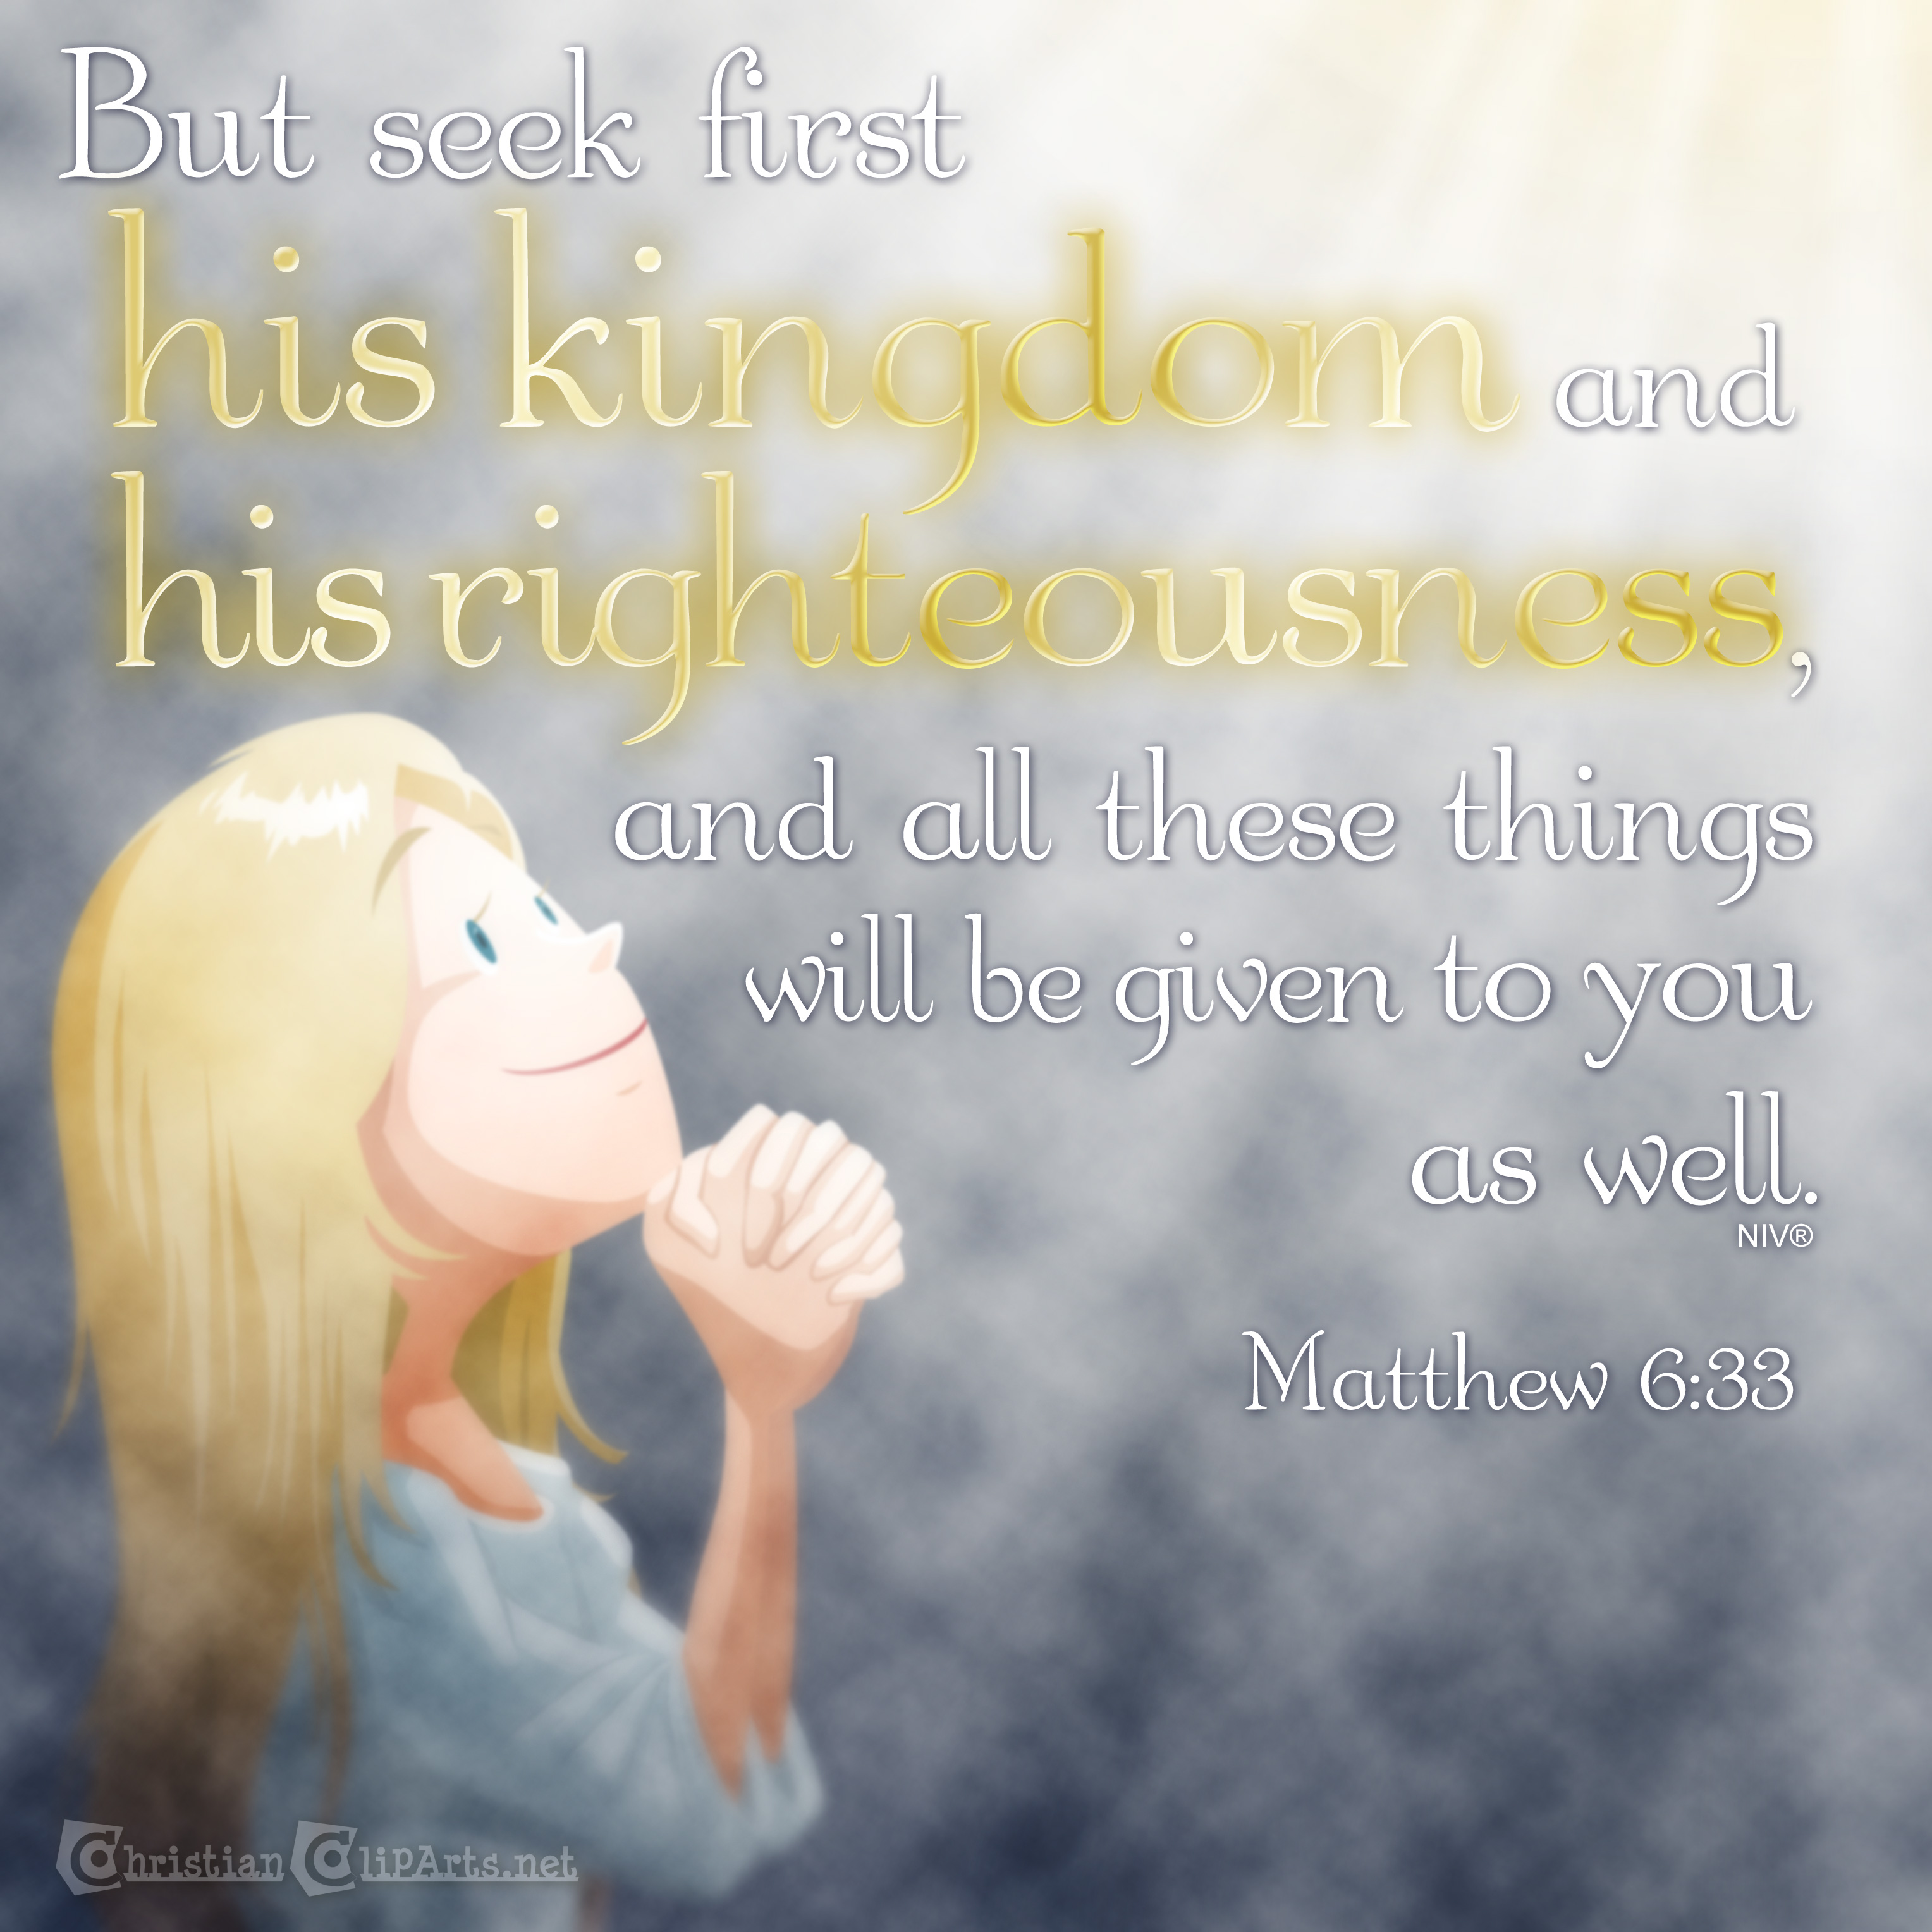 Seek first his kingdom and righteousness